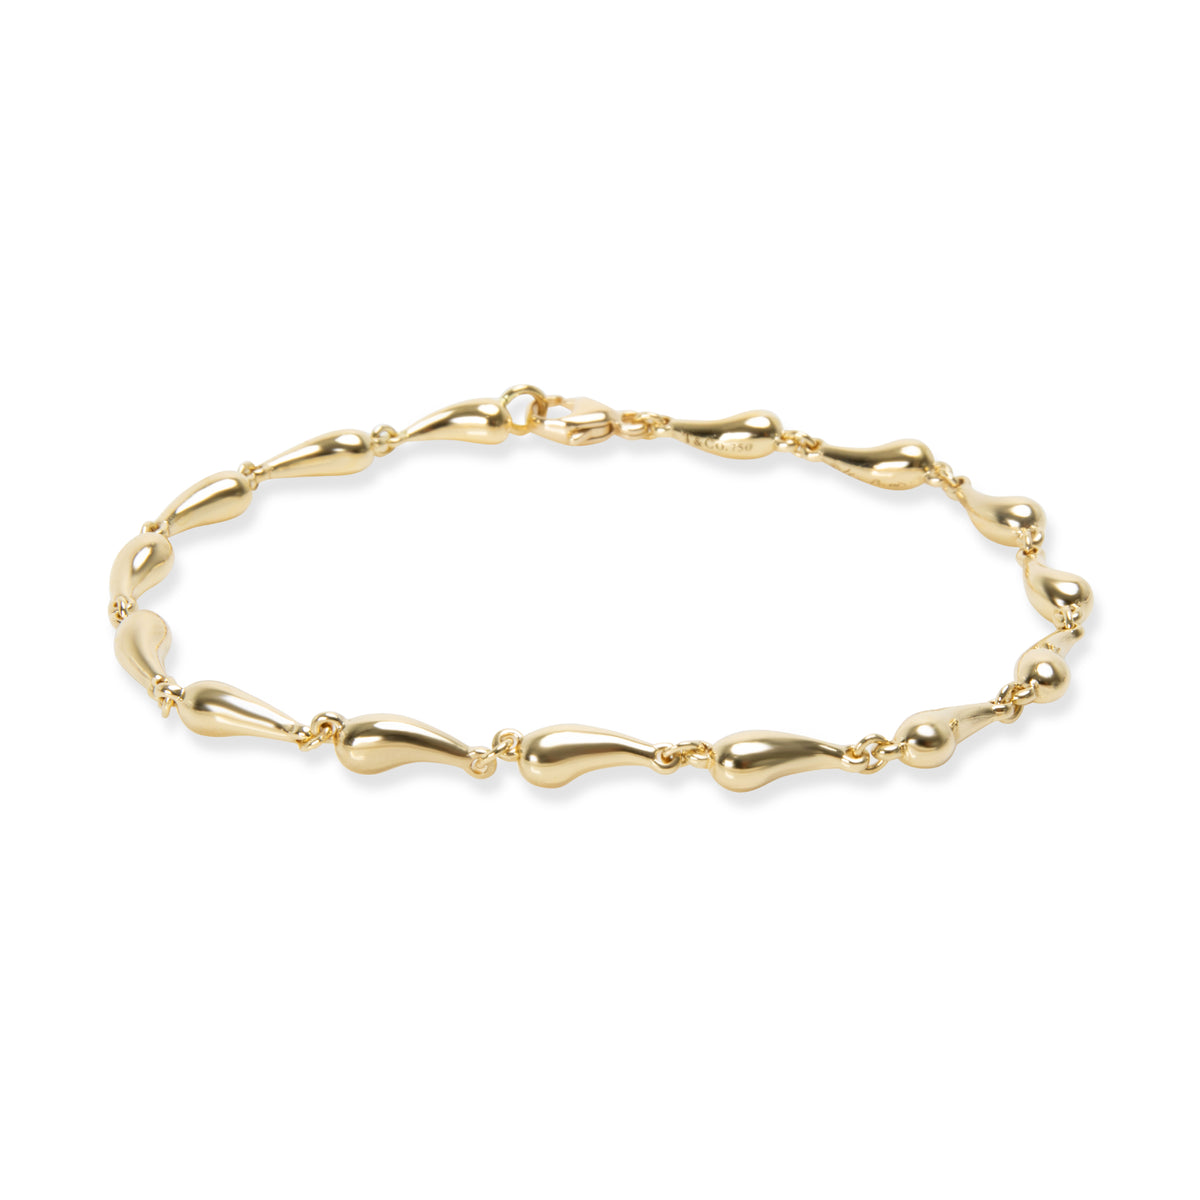 Tiffany & Co. Elsa Peretti Teardrop Bracelet in 18K Yellow Gold